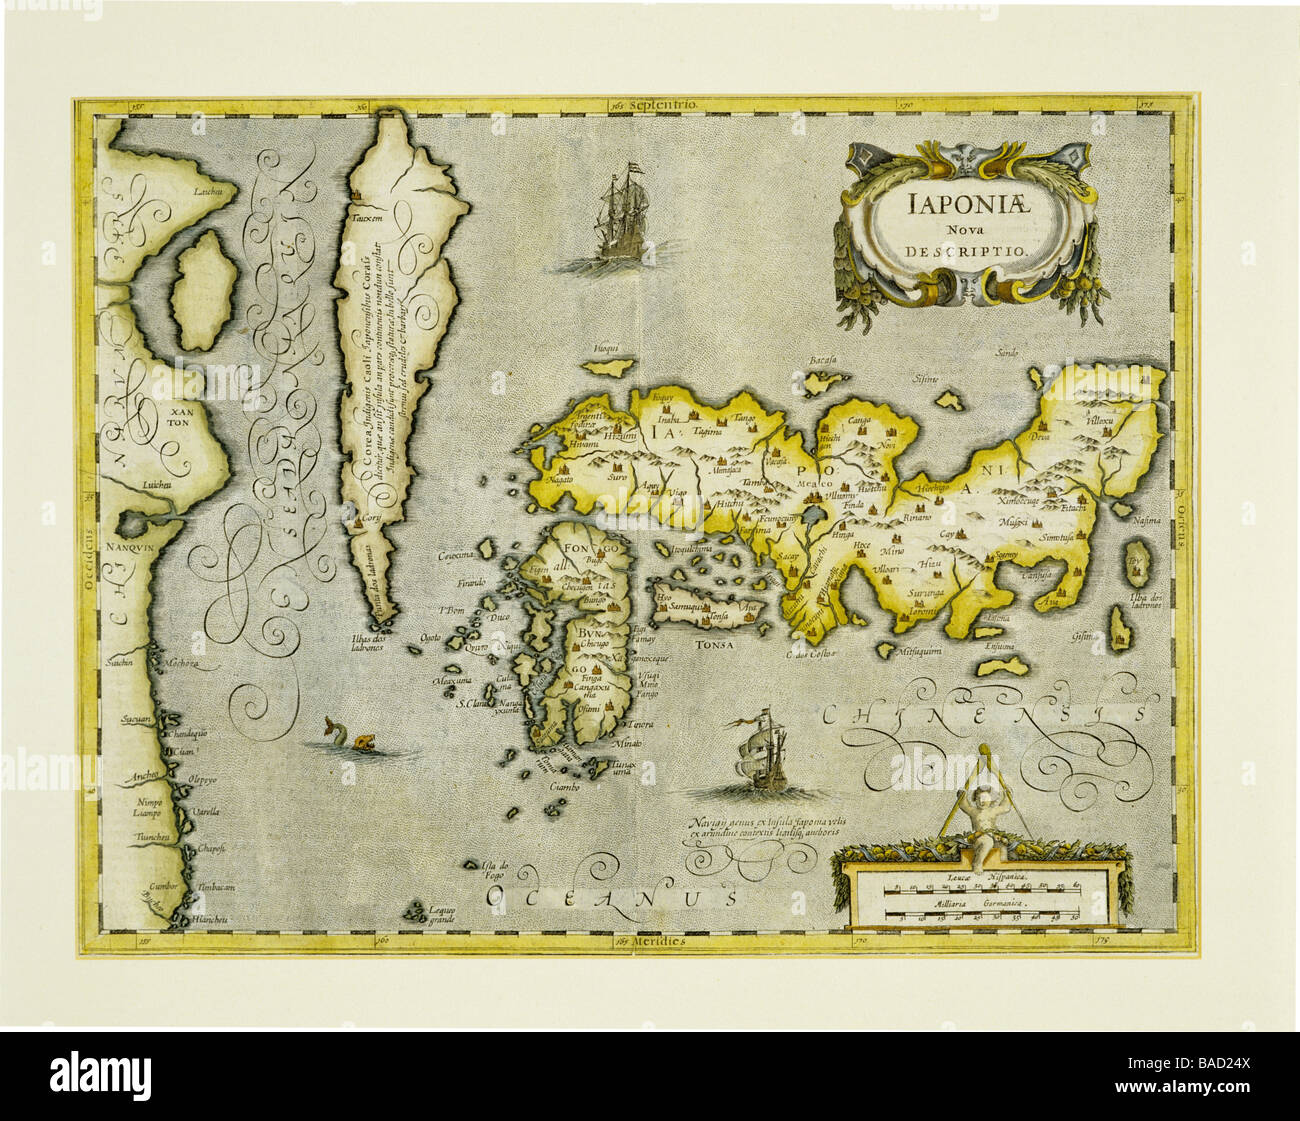 Ancient Map Of Japan.Ancient Map Of Japan Stock Photo 23644010 Alamy